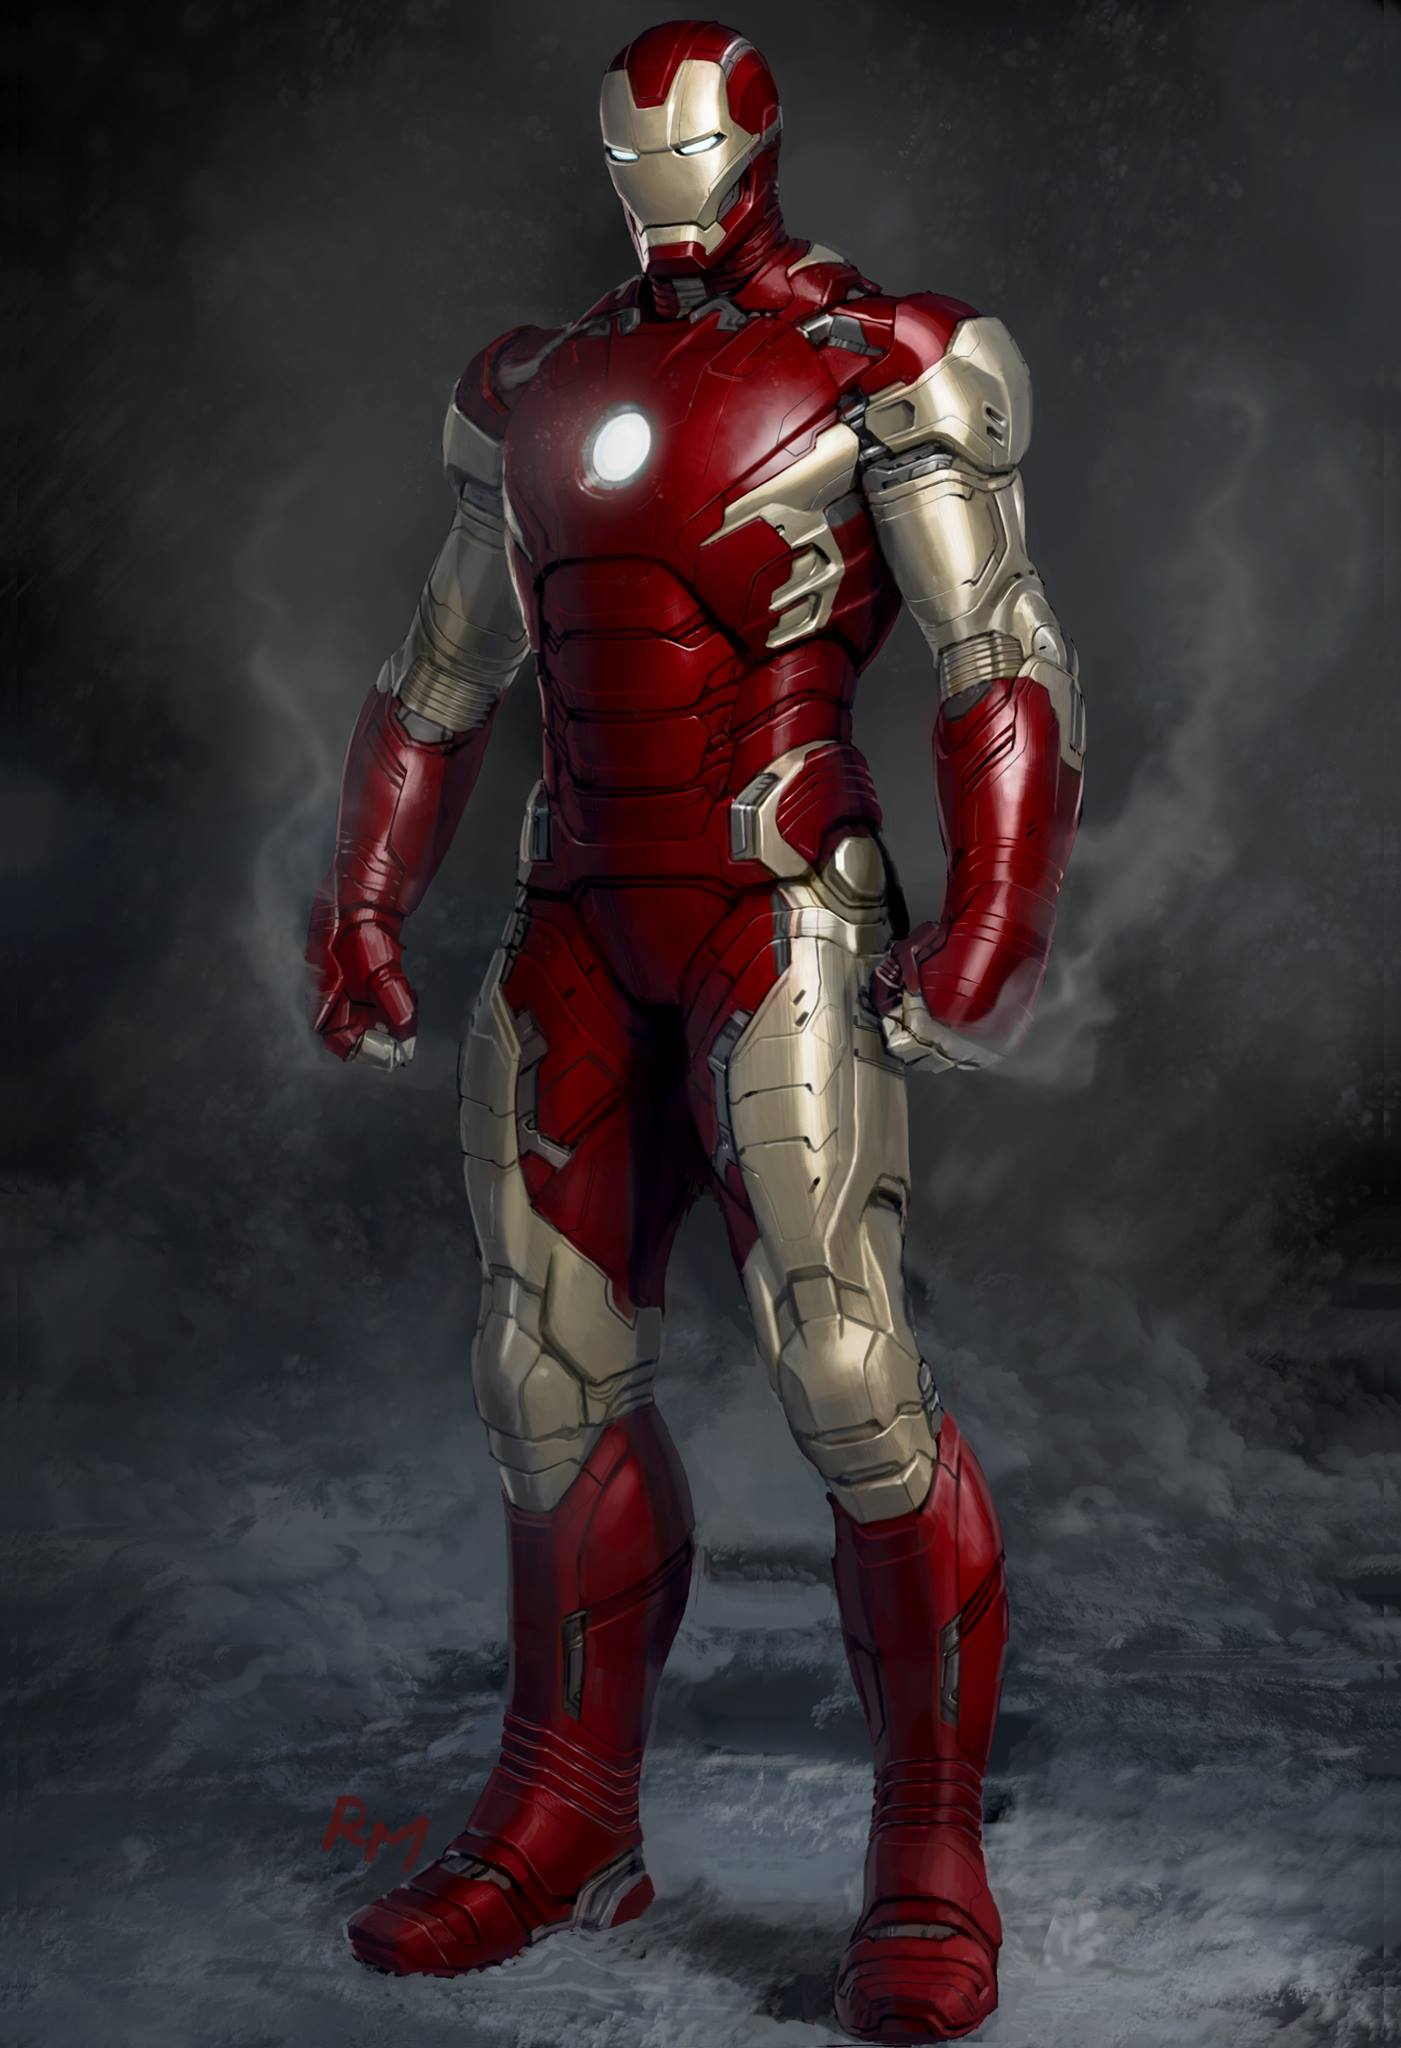 avengers: infinity war mark 48 speculation - page 7